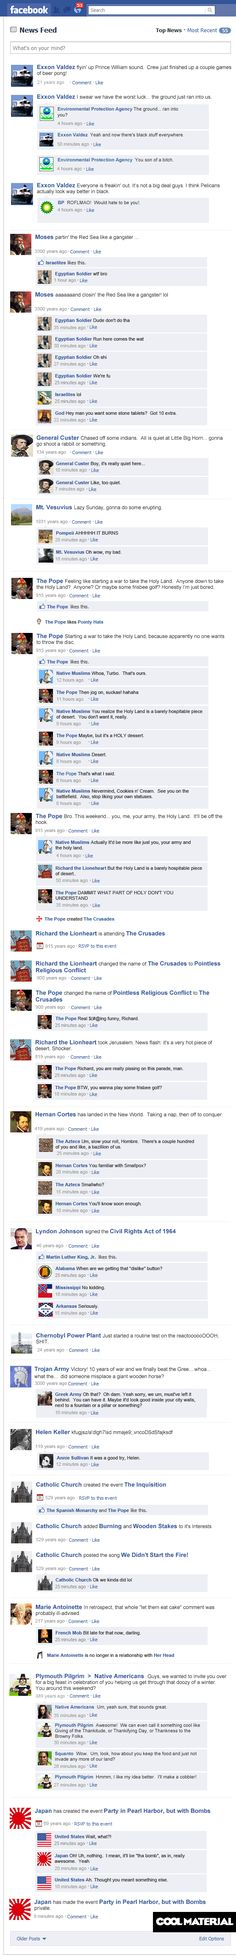 """If historical events had a facebook status. Pretty funny! My favorite is Helen Keller's """"status"""" =]"""